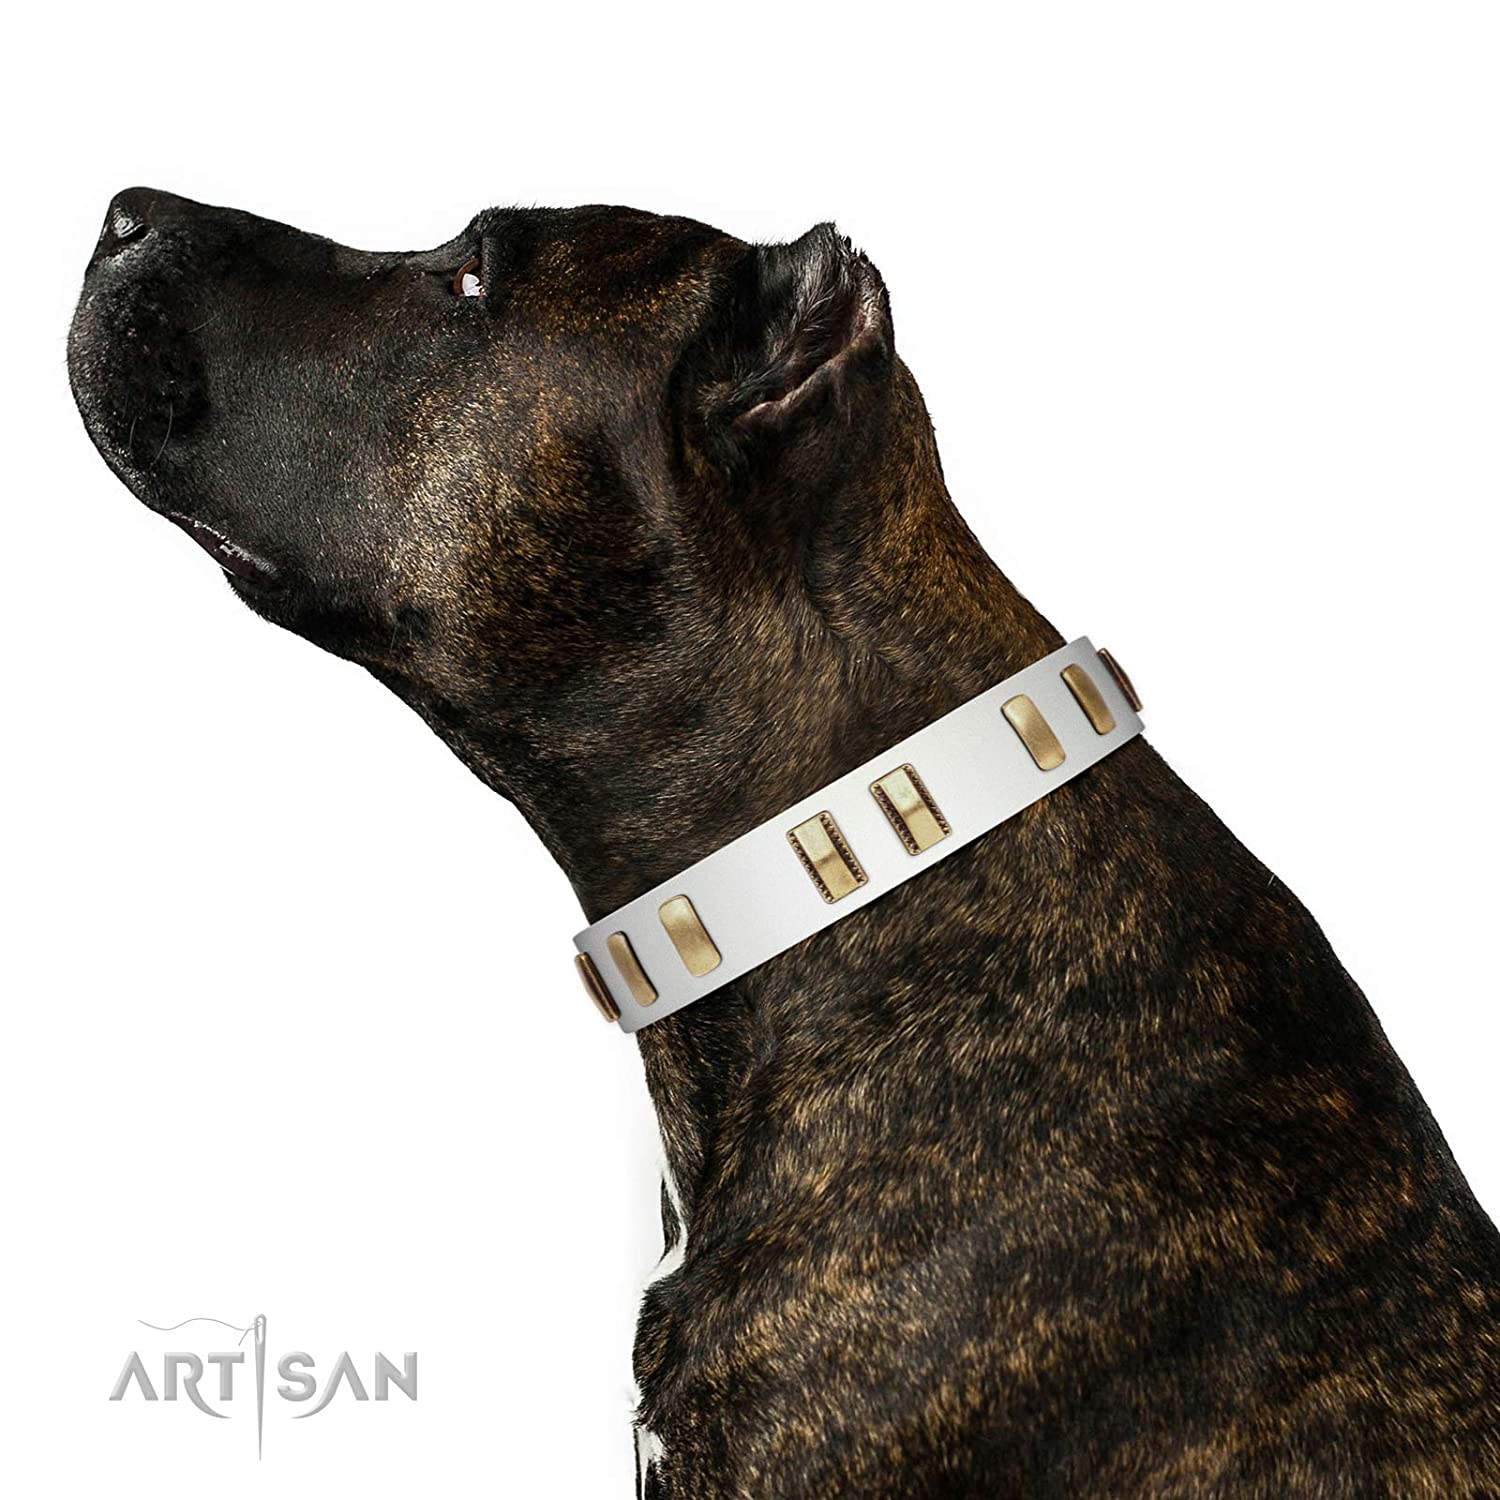 Fits for 36 inch (90cm) dog's neck size FDT Artisan 36 inch White Leather Collar with Vintage Old Bronze-Like Plates in Box Glorious Light 1 1 2 inch (40 mm) Wide